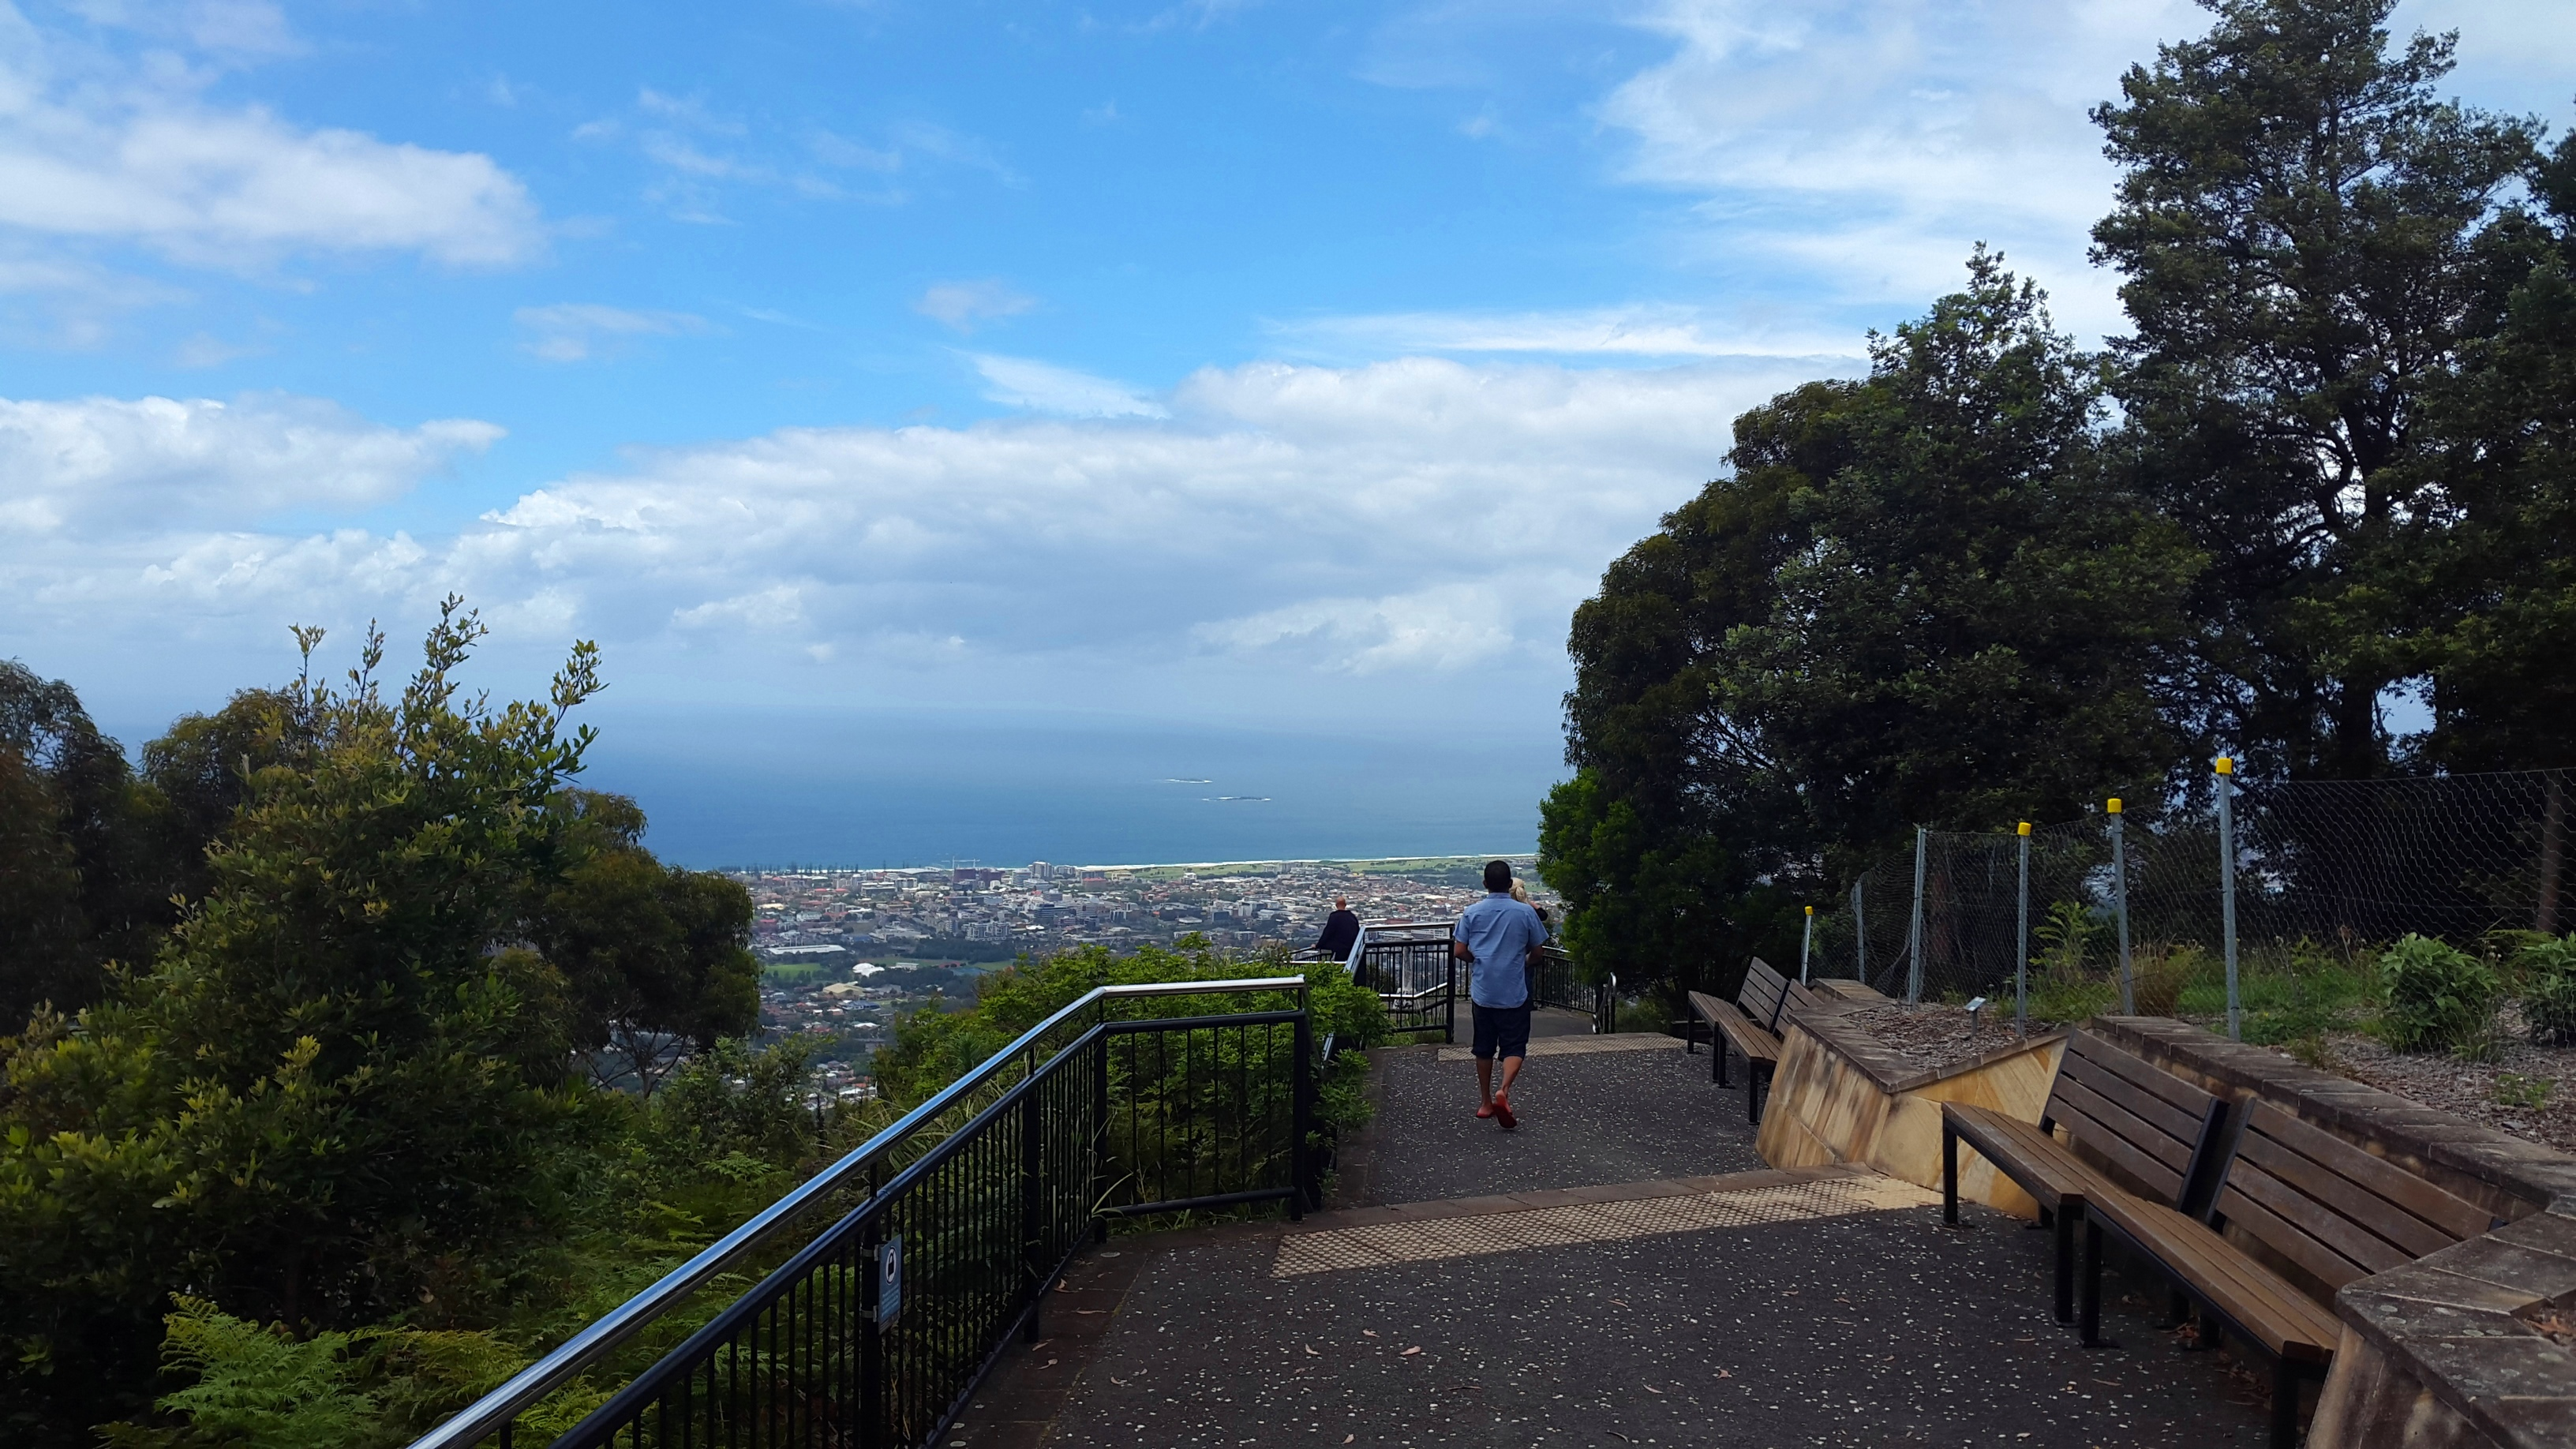 mount keira lookout - photo #3